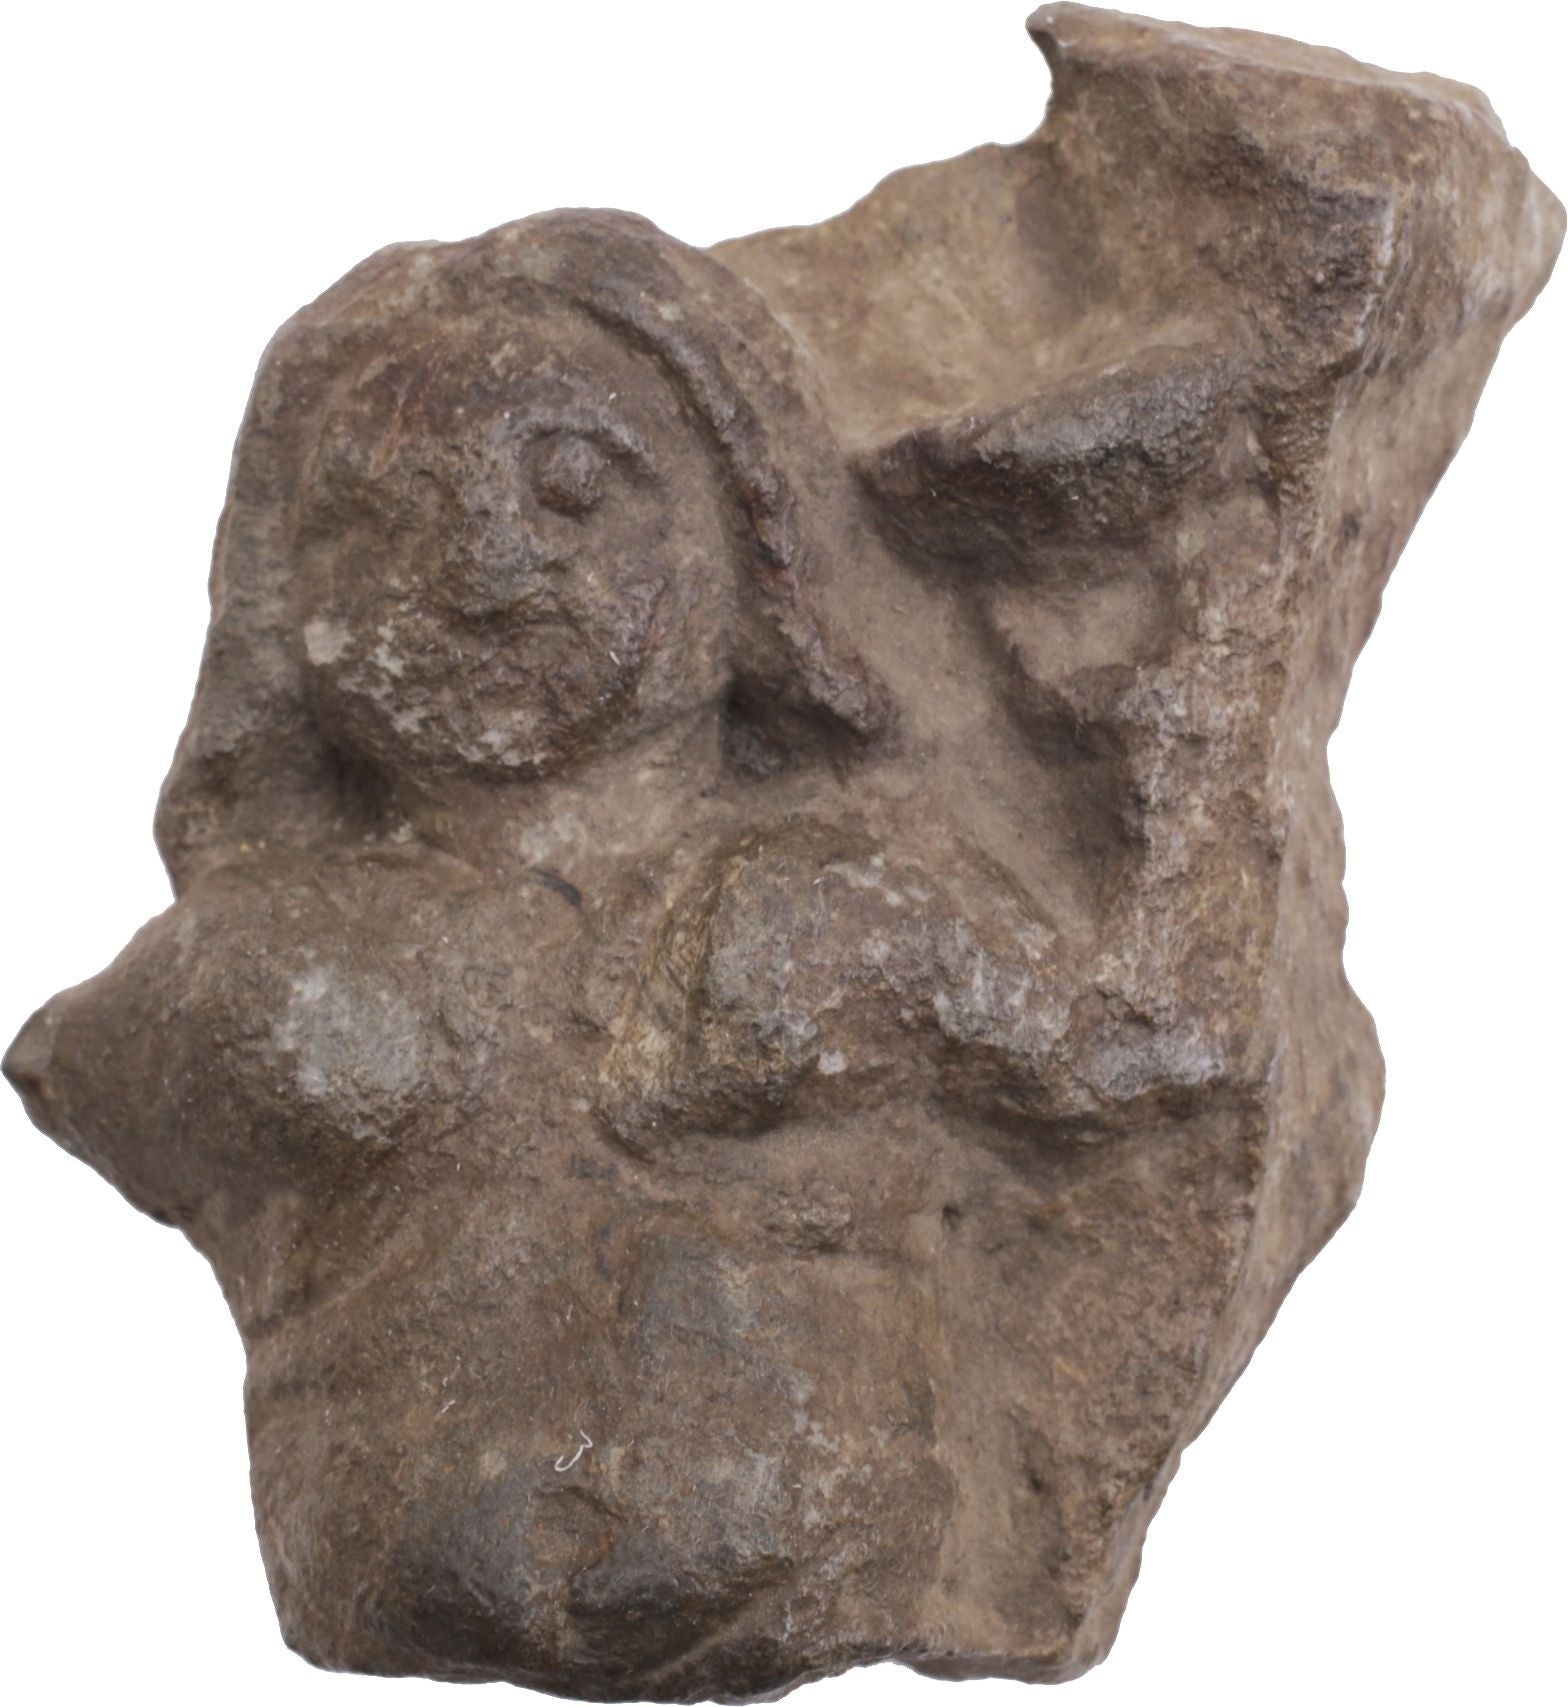 EGYPTIAN CARVED STONE FIGURE - Fagan Arms